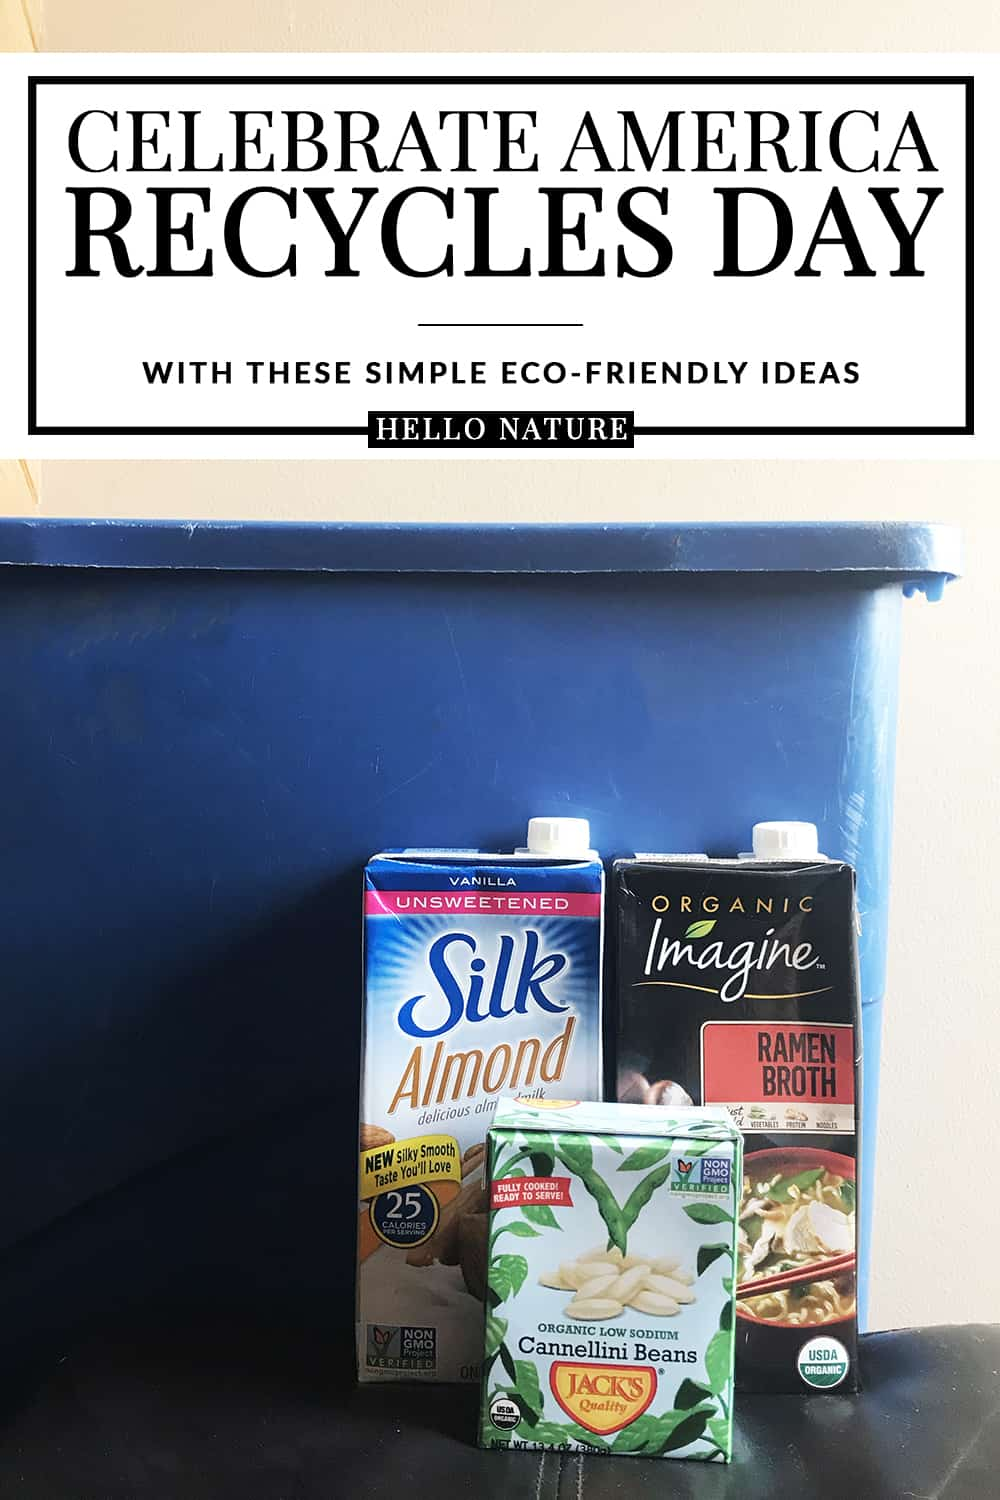 Want an easy way to celebrate America Recycles Day on November 15th? Check out these ideas and learn more about ways you can easily go green with your family. #RecycleYourCartons #Recycling #GreenLiving #EcoFriendlyLiving #AmericaRecyclesDay